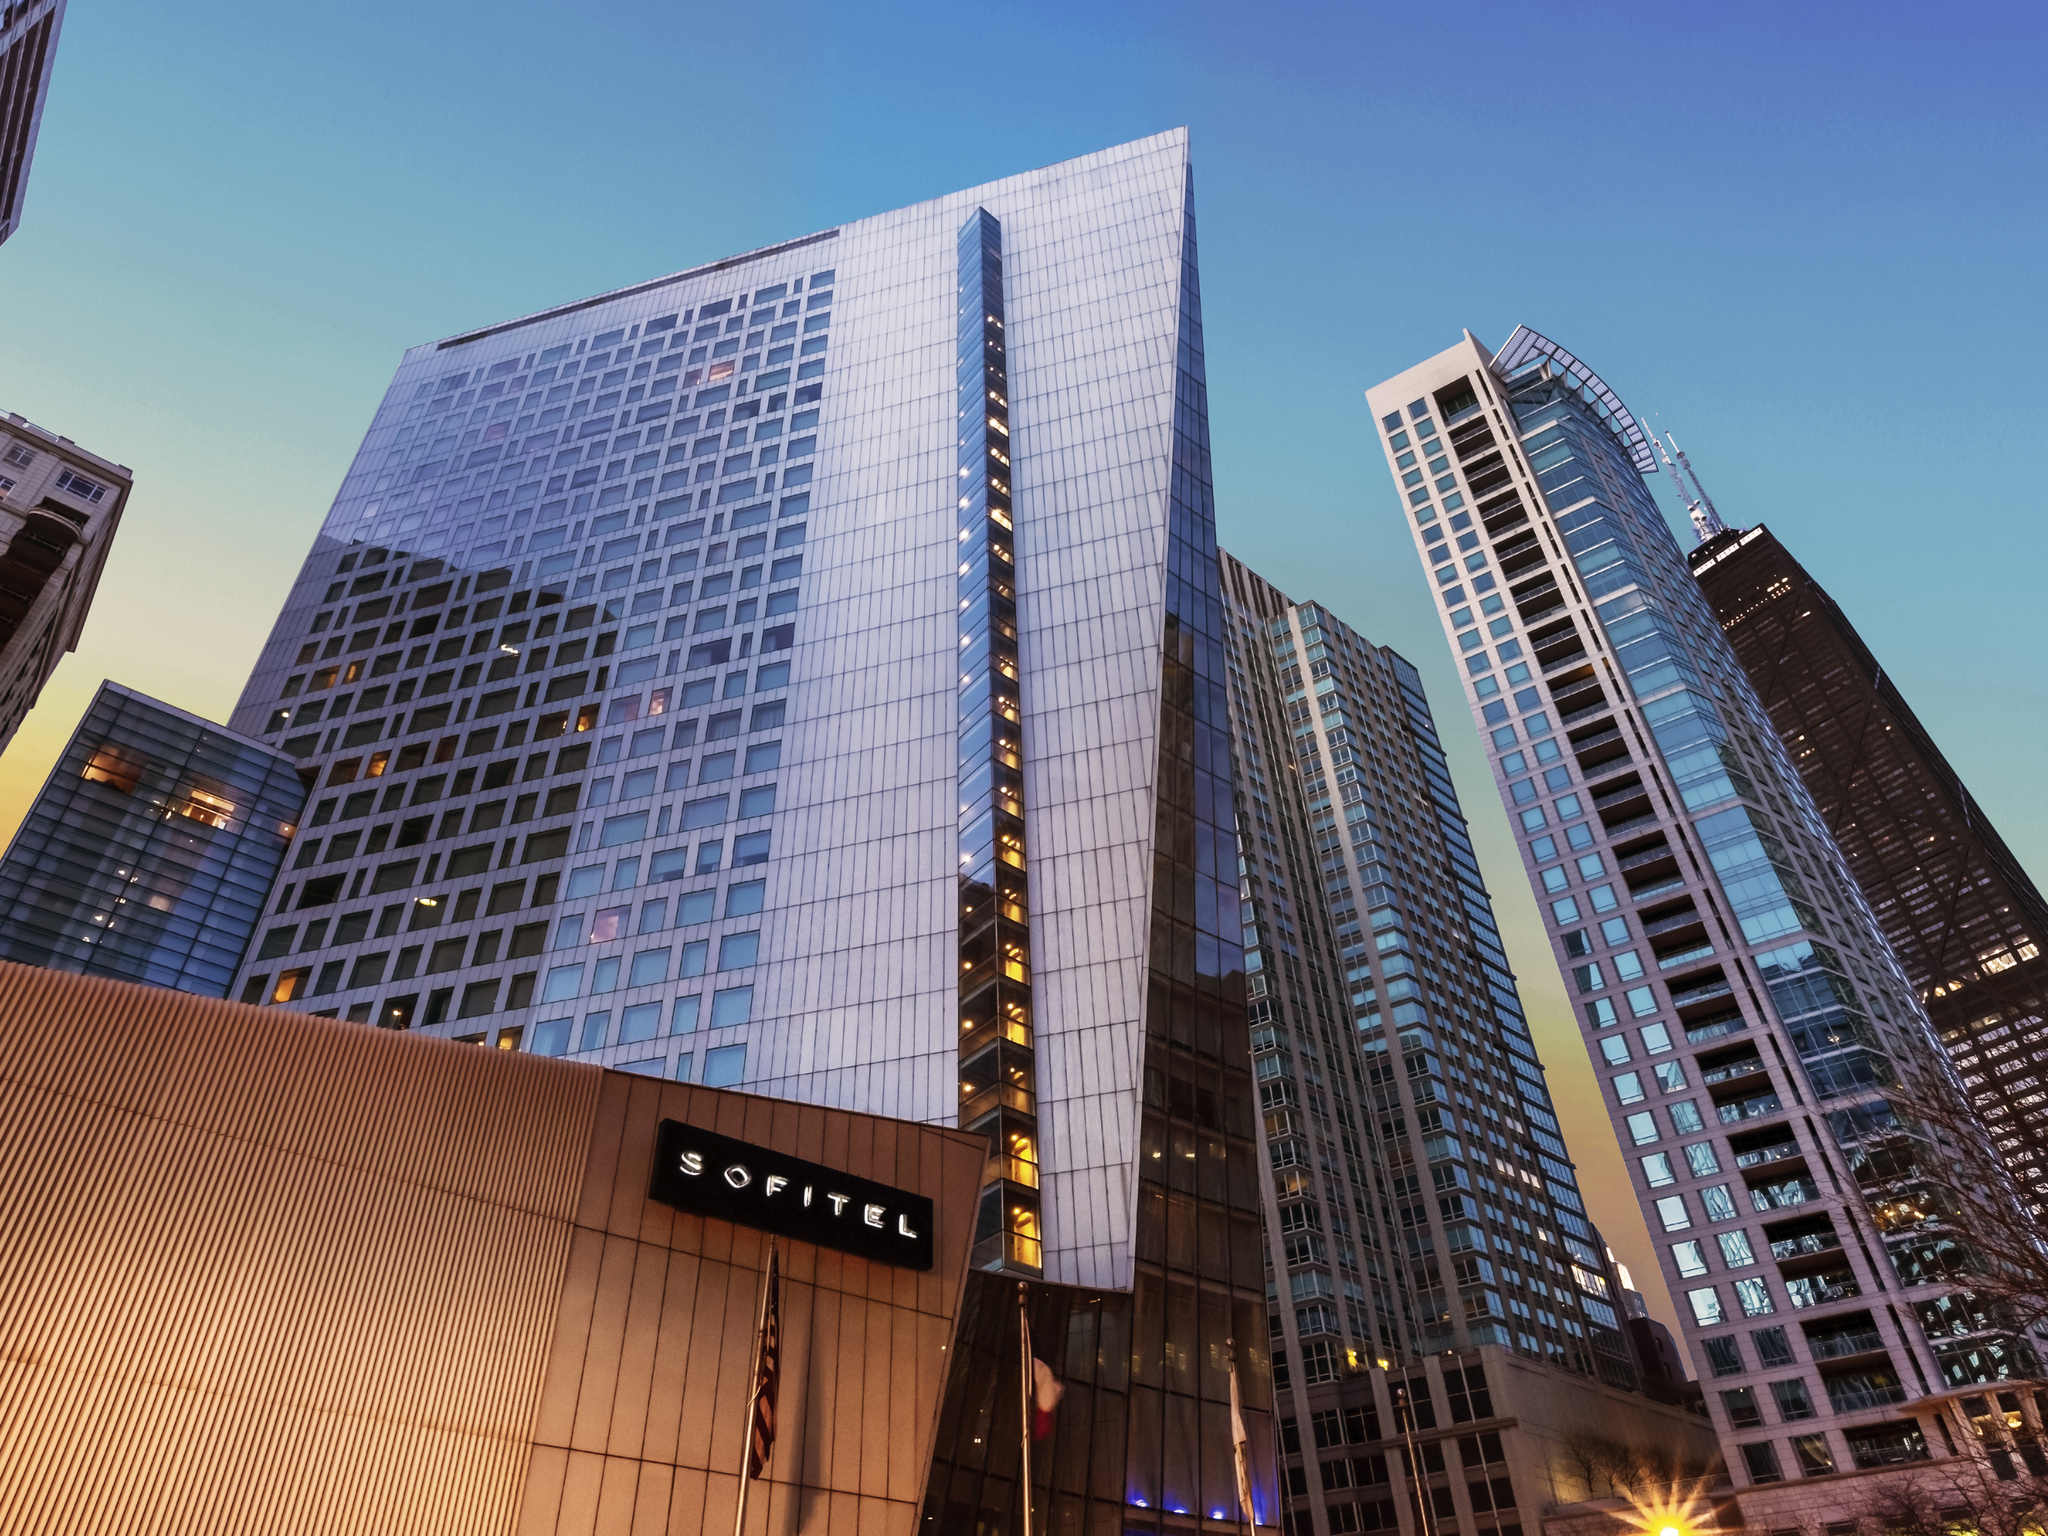 Hotell – Sofitel Chicago Magnificent Mile